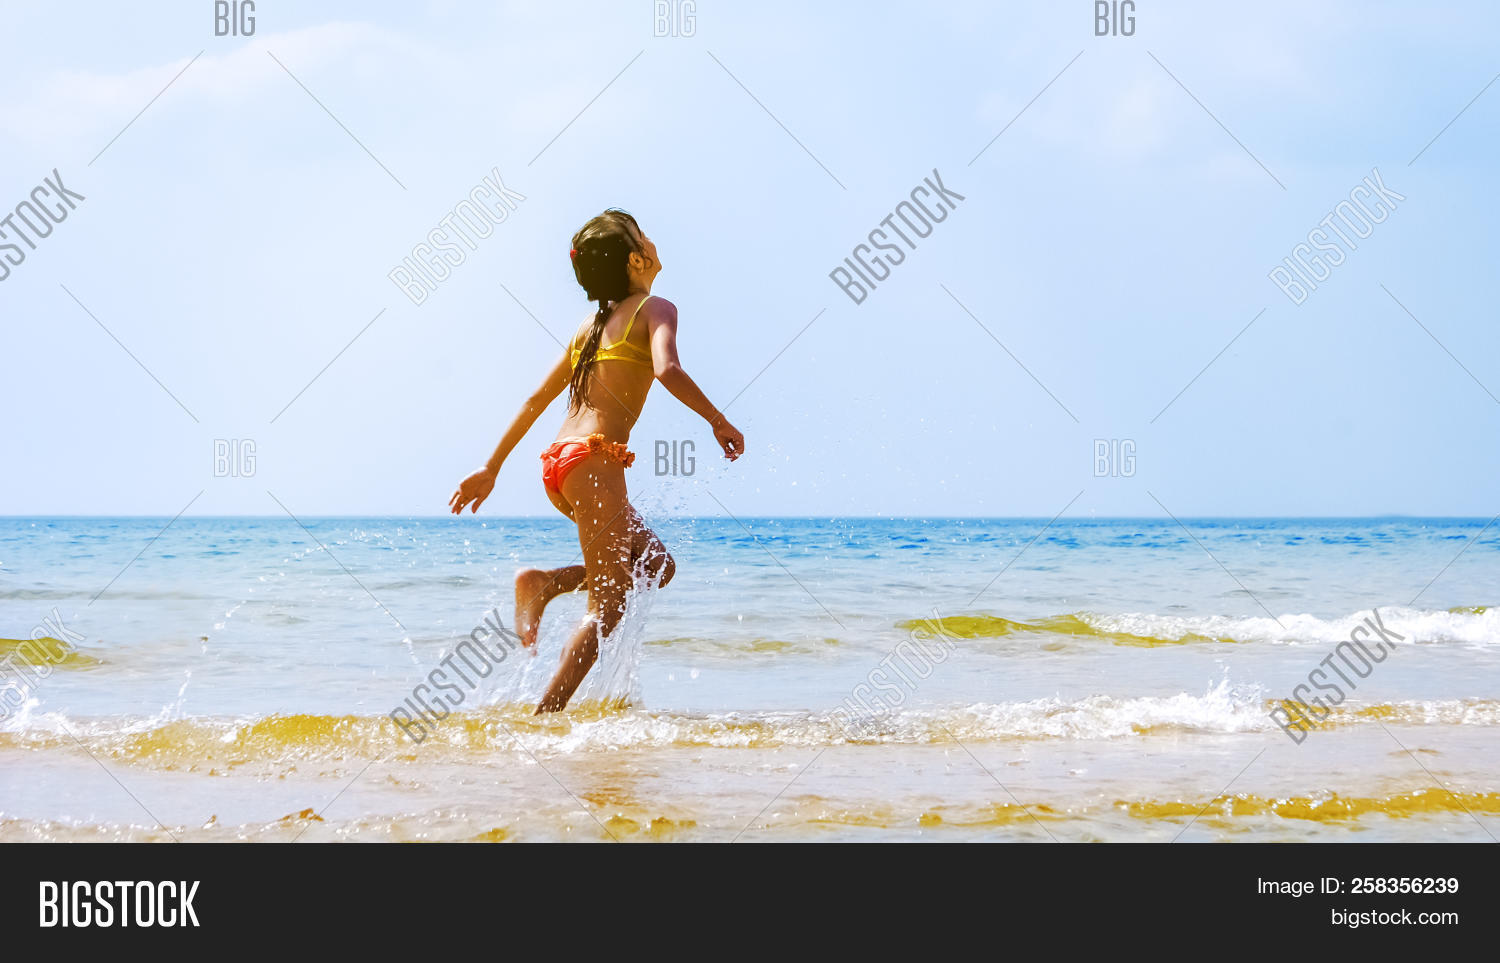 1a42f152b1af7 Summer fun beach woman splashing water. Panorama landscape of tropical  ocean on travel holiday. Bikini girl running in freedom and joy with hands  up ...